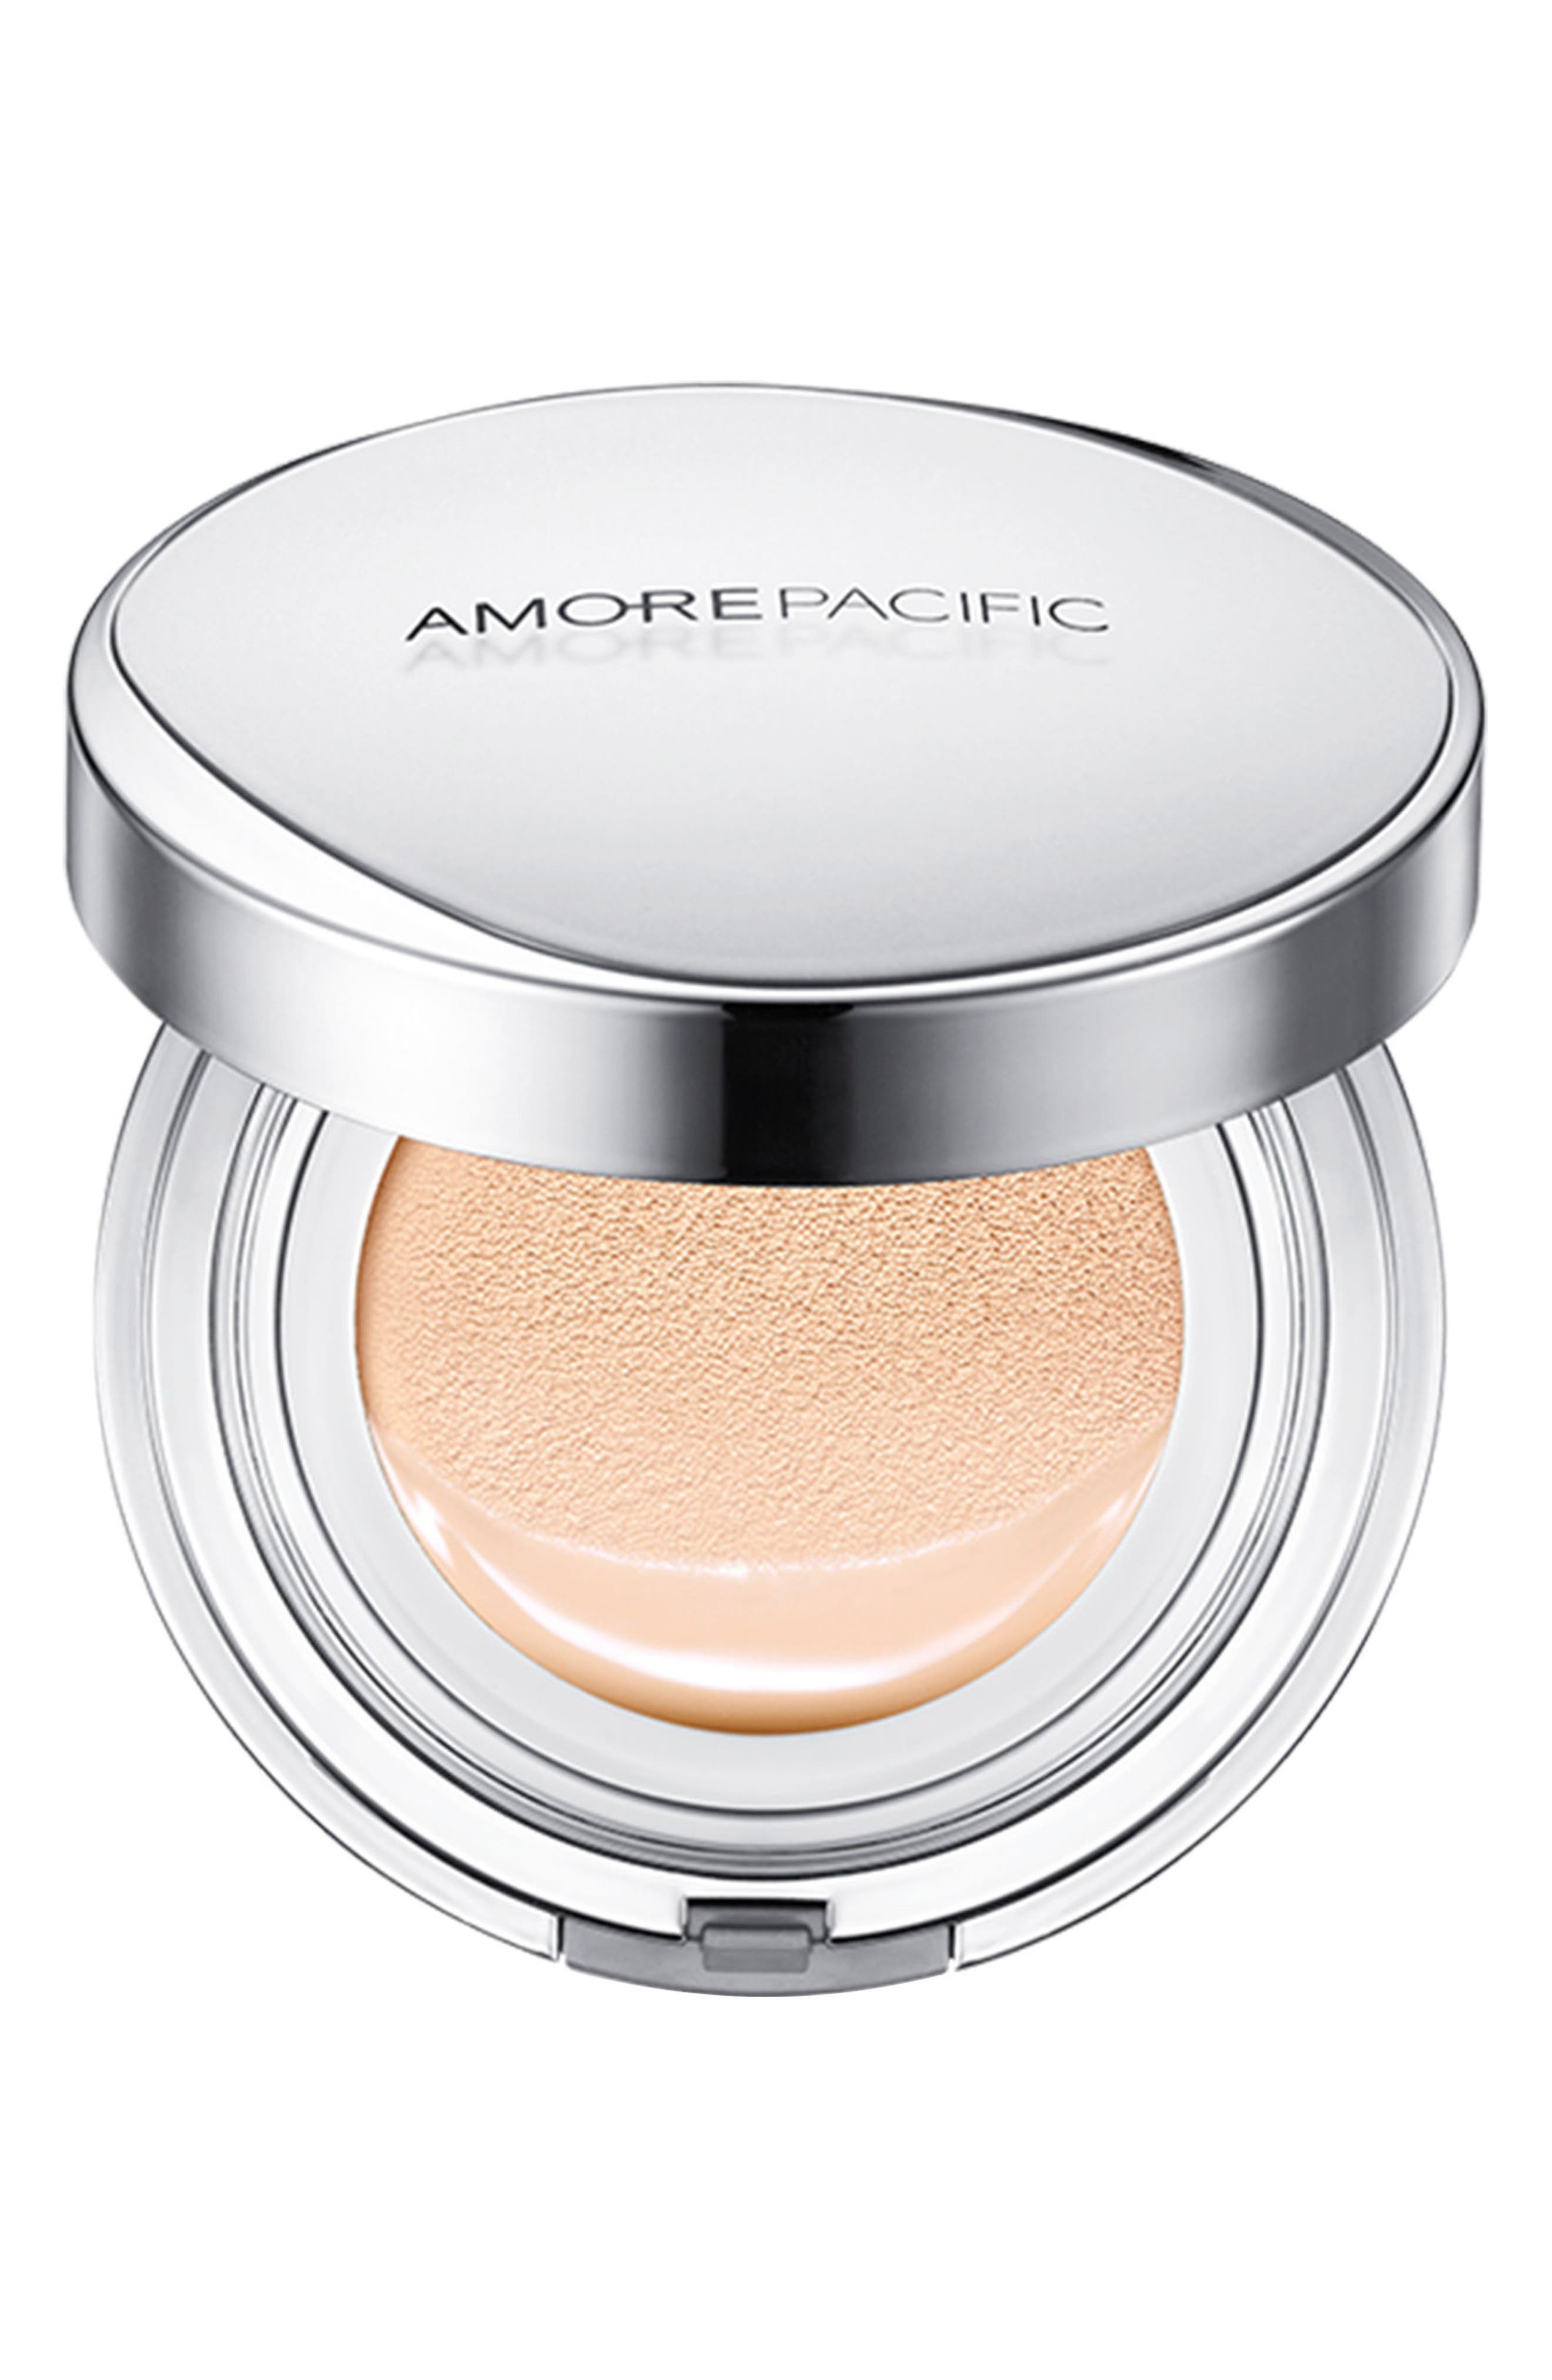 AMOREPACIFIC 'Color Control' Cushion Compact Broad Spectrum SPF 50